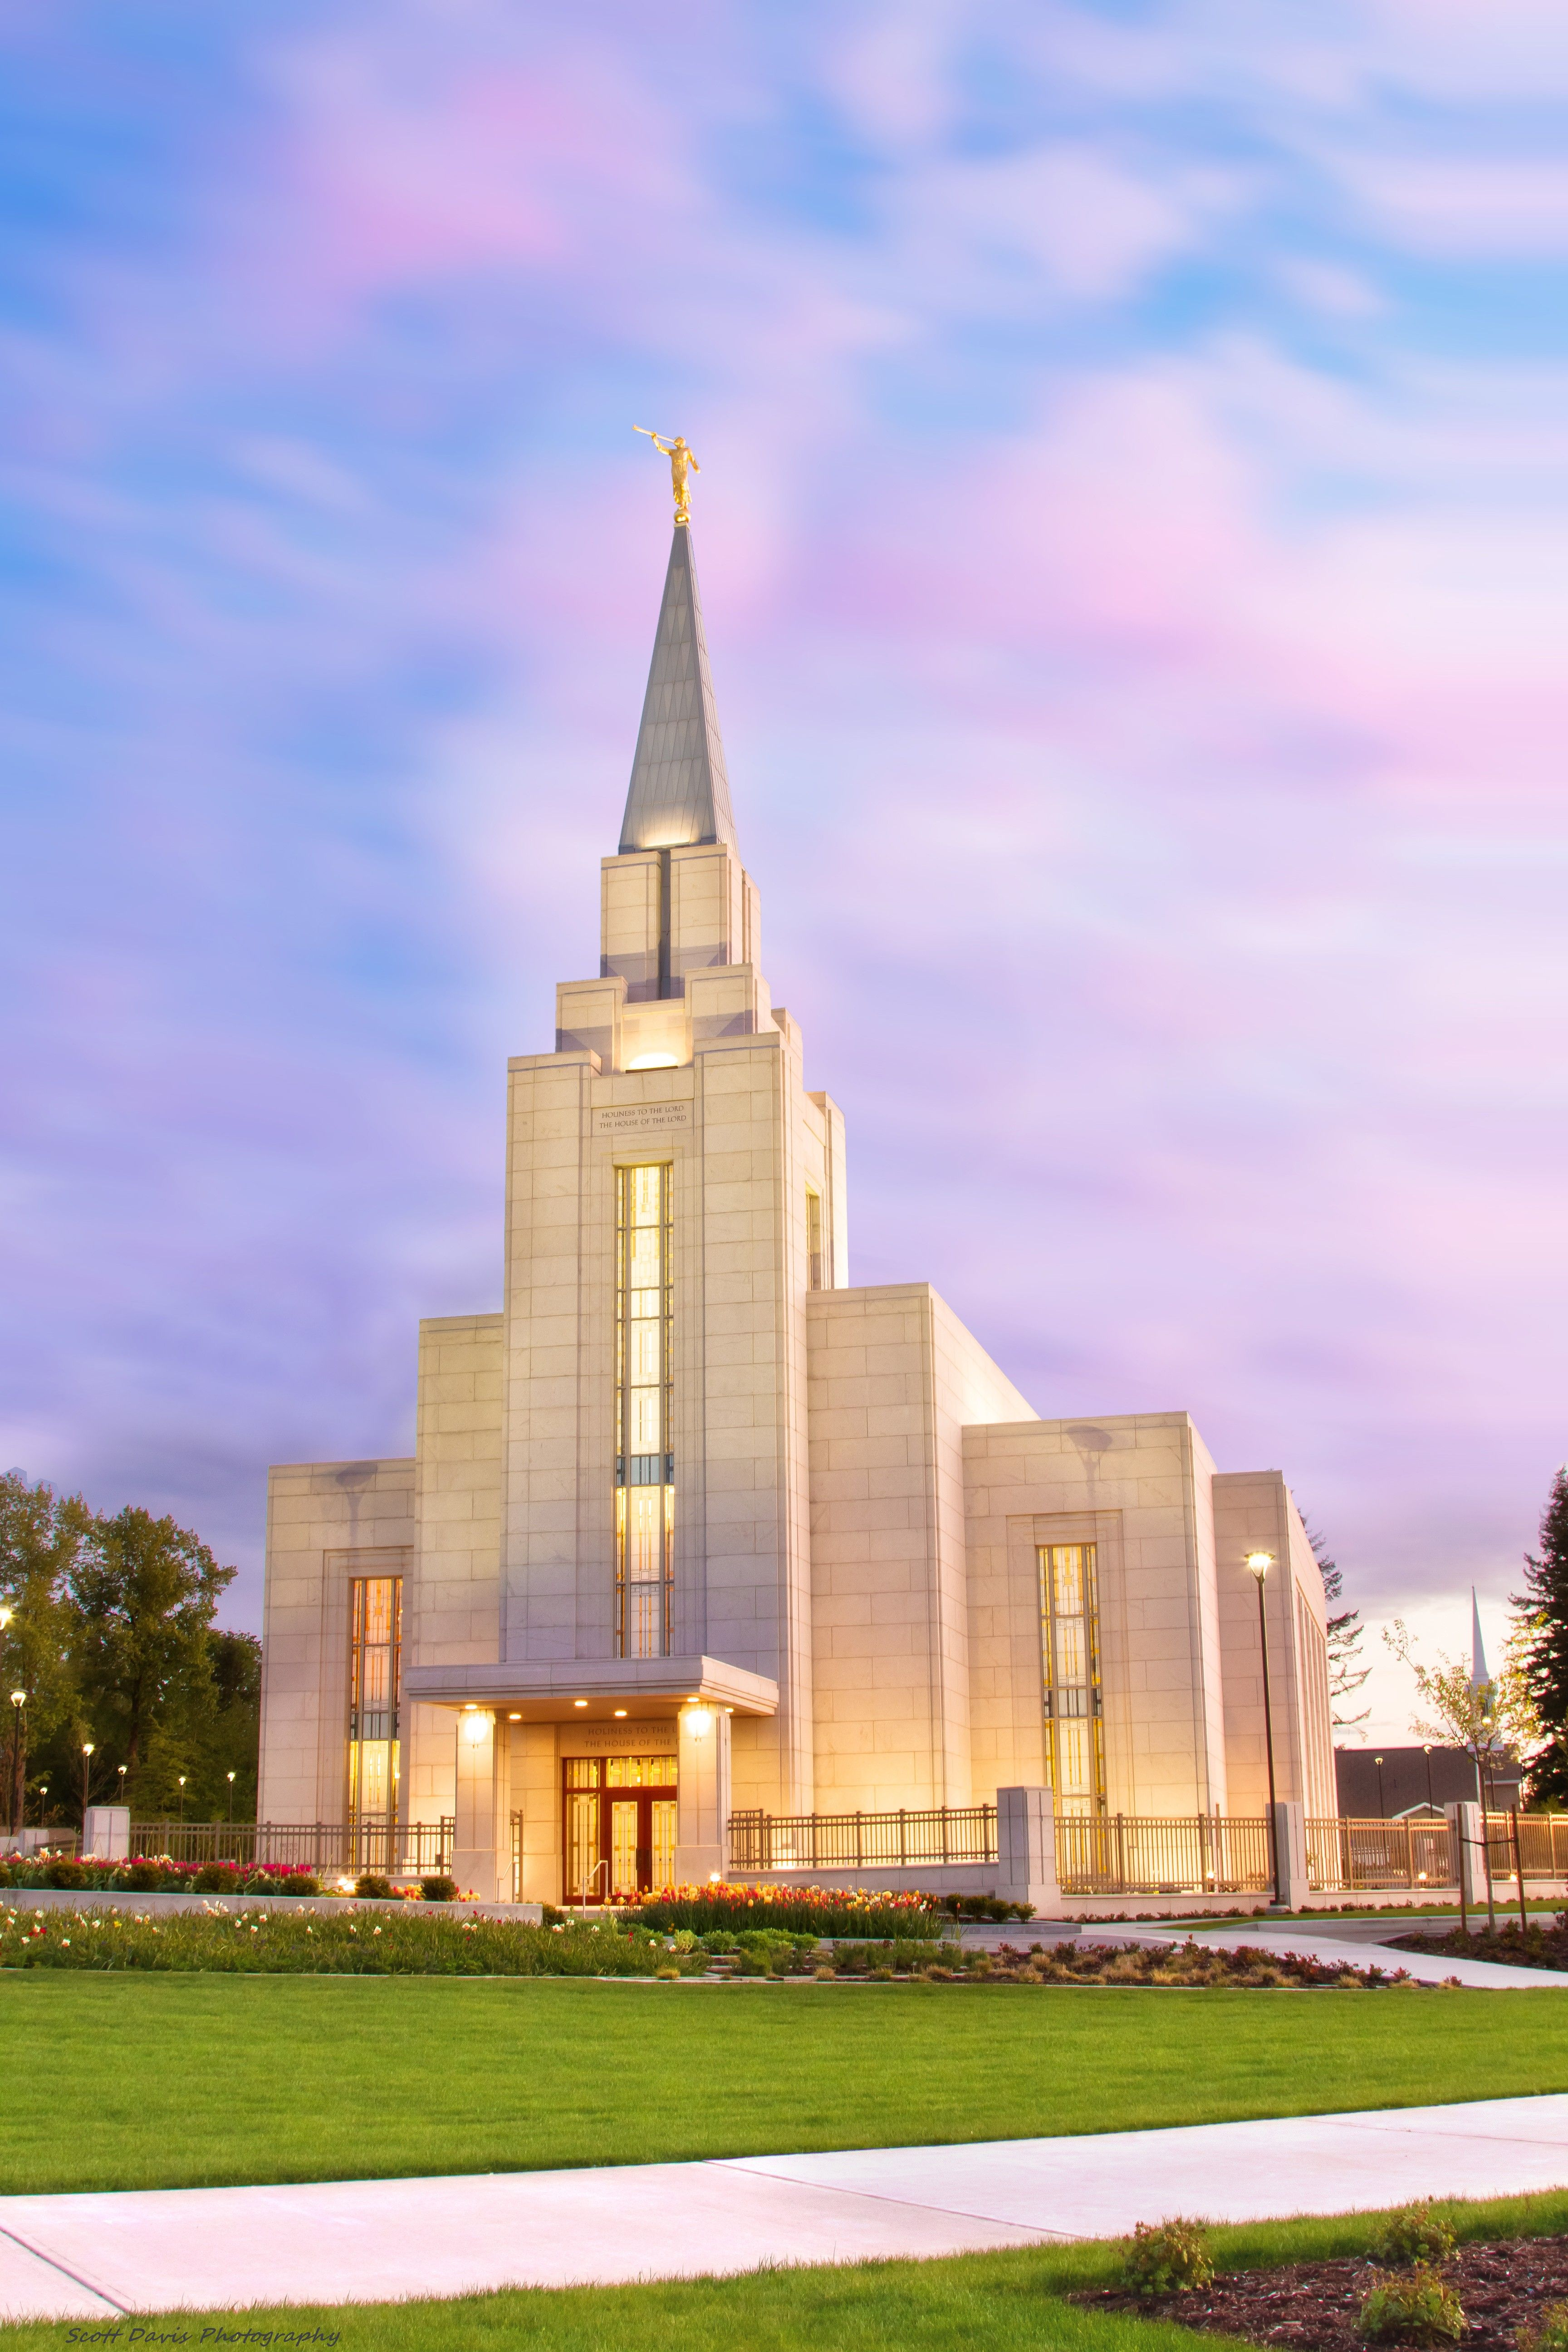 The entire Vancouver British Columbia Temple, including the entrance and scenery.